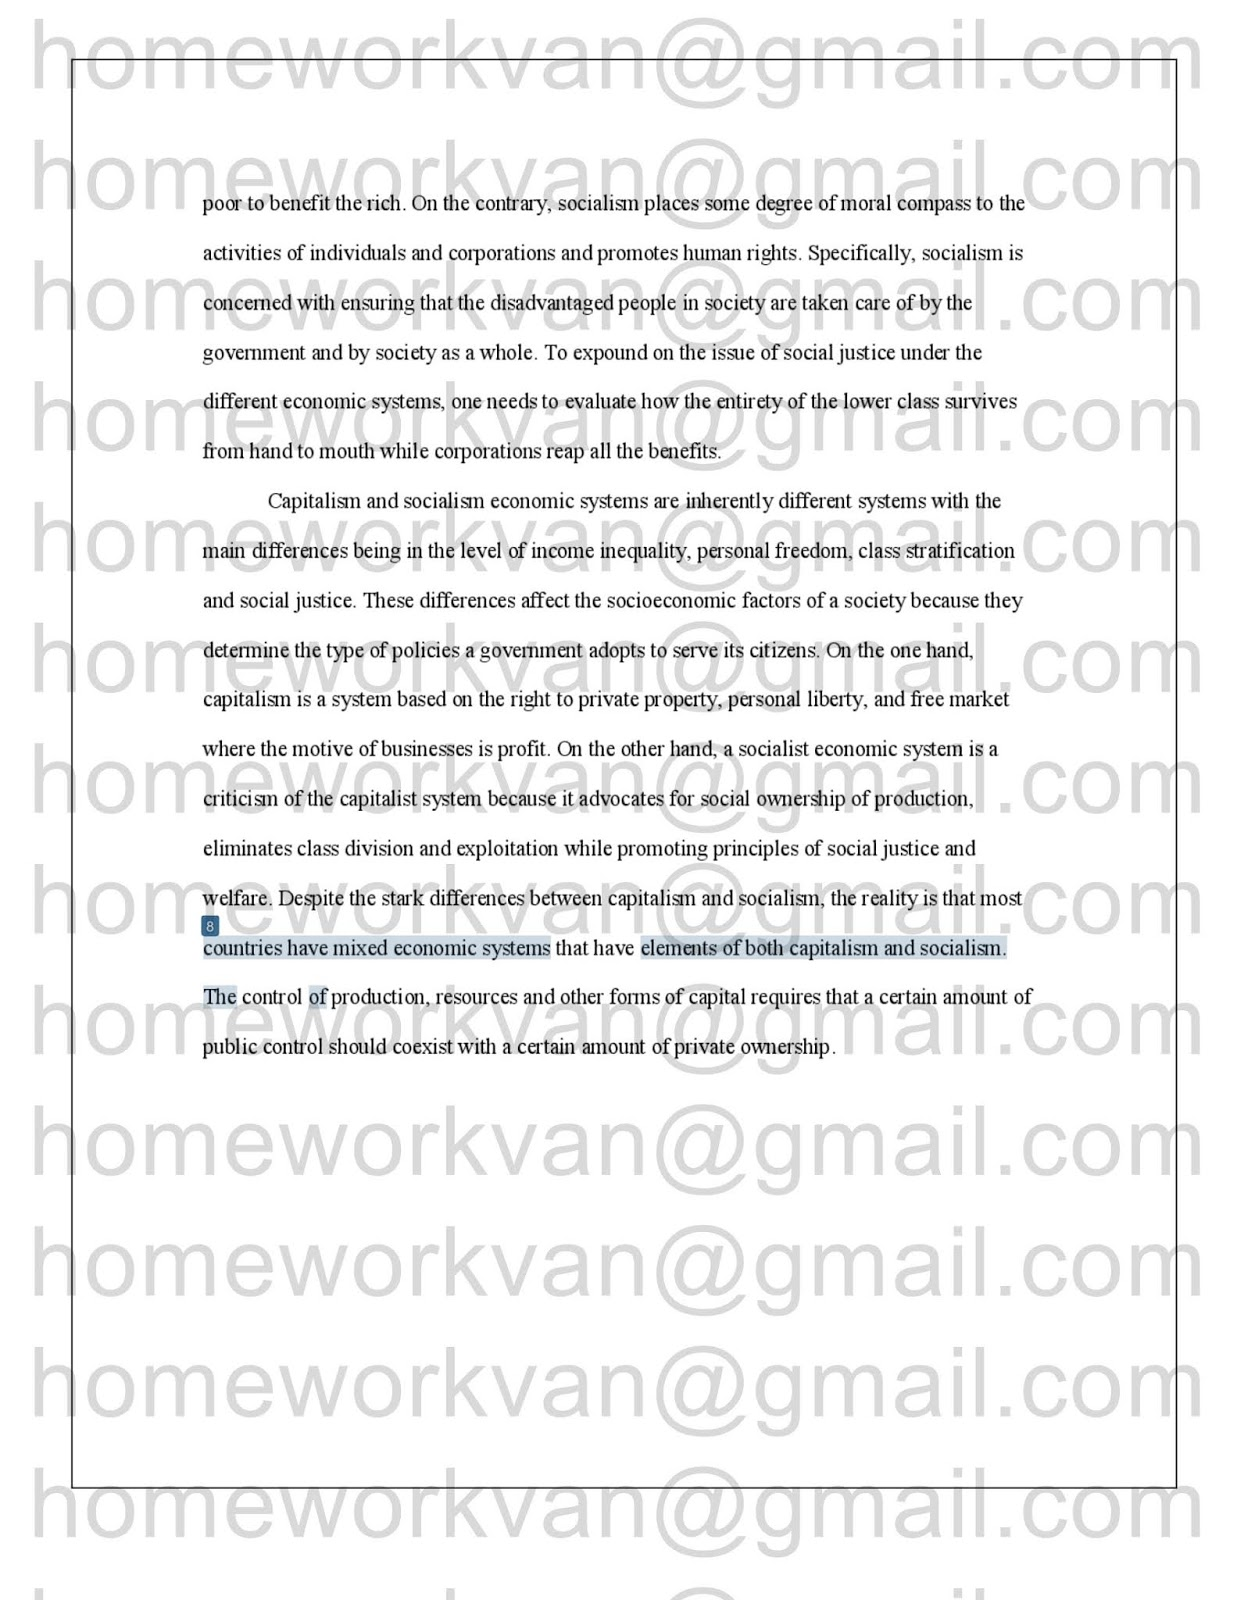 College Vs High School Essay The Following Is Plagiarism Report For Compare And Contrast Essay A  Comparison Of Capitalism And Socialism Economic Systems Essay  By  Homeworkvan Essay About Business also Essay Papers Online Homeworkvan Official Blog Compare And Contrast Essay A Comparison  High School Essays Examples